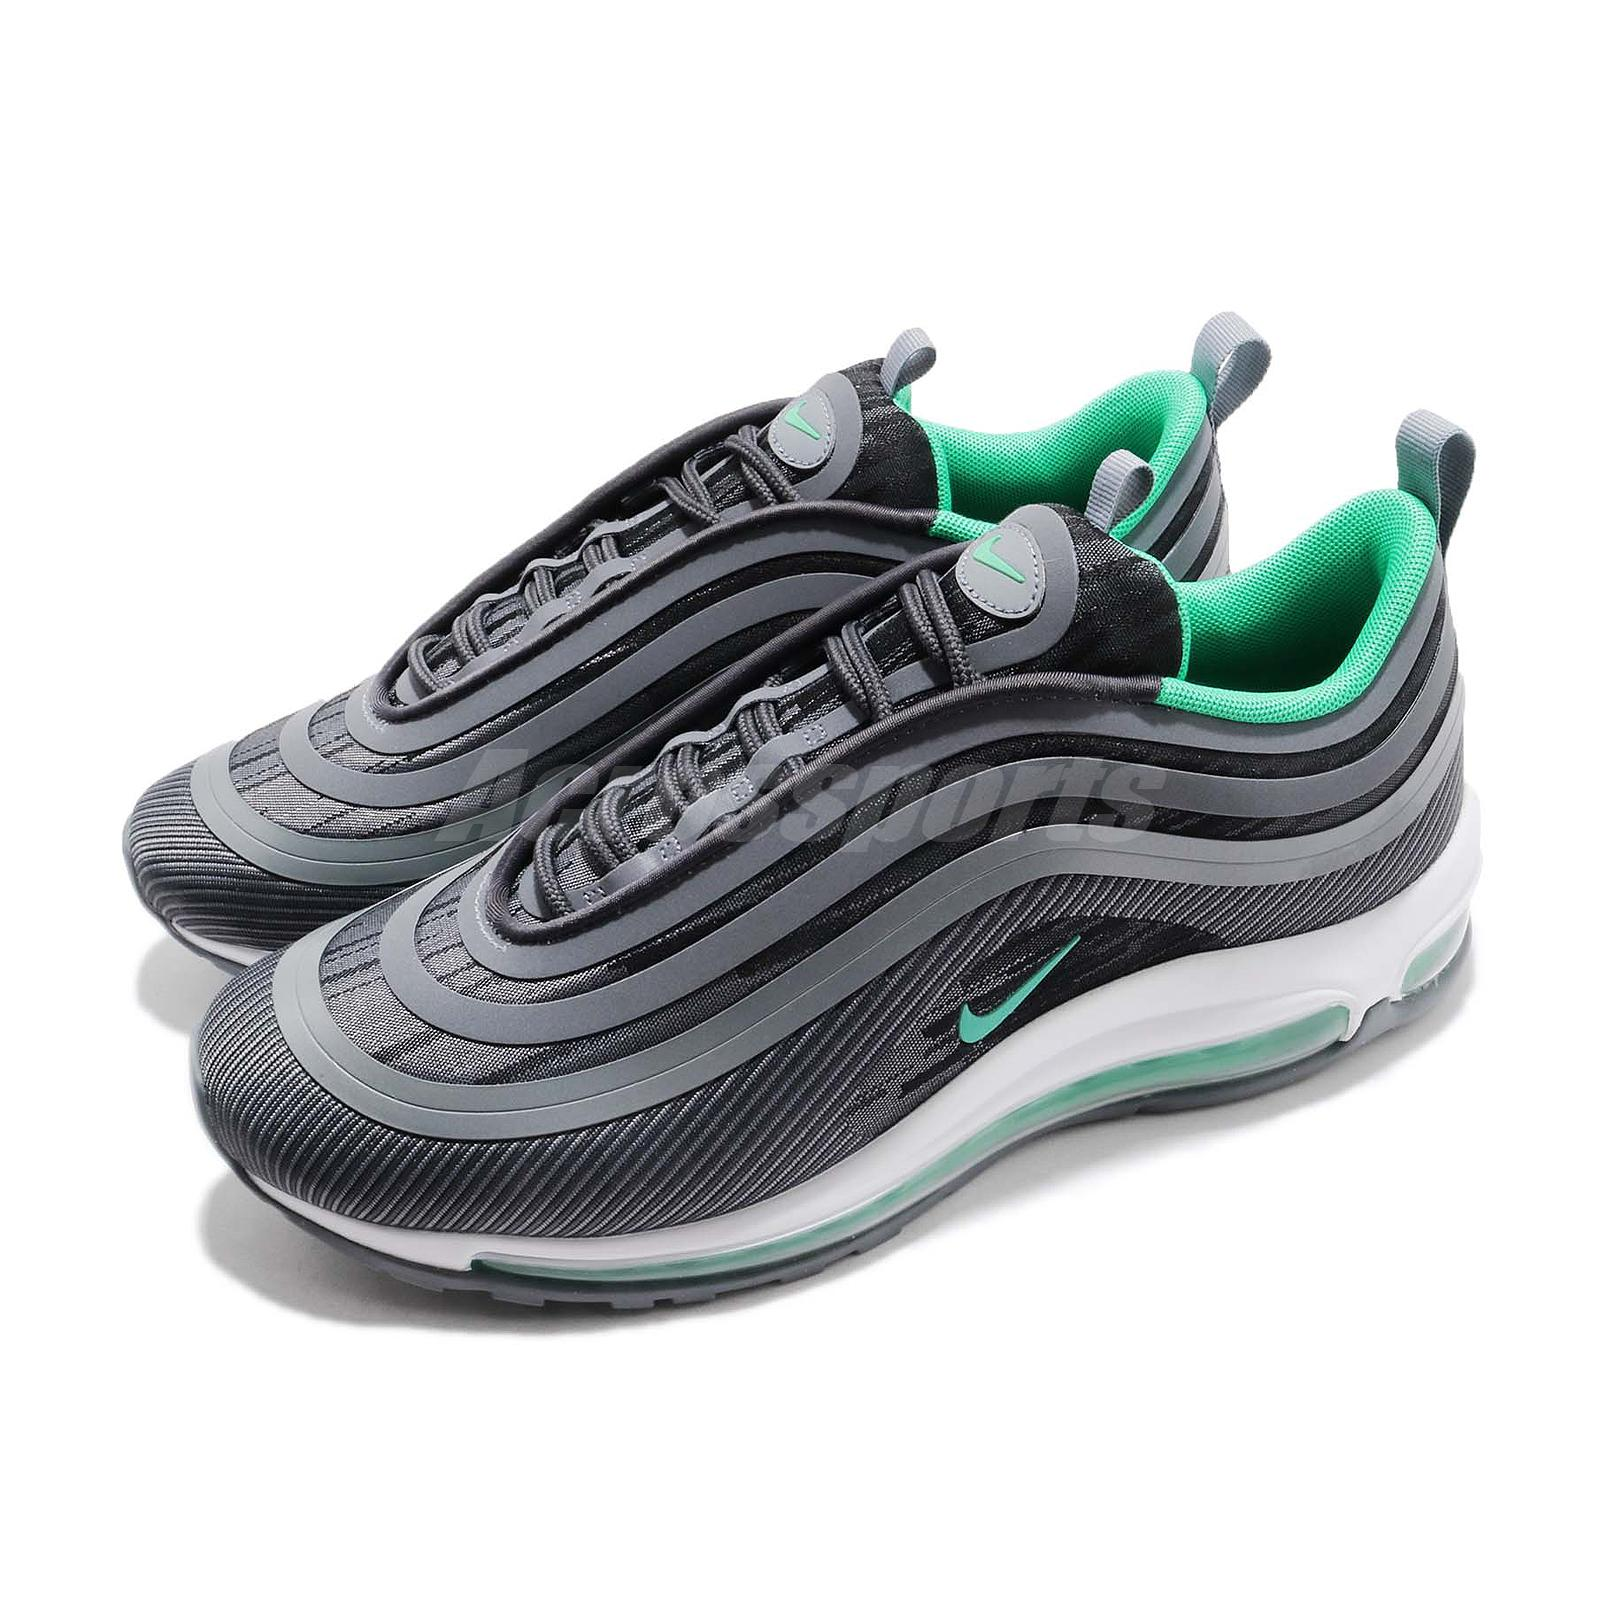 huge selection of 1ad93 c8a01 Details about Nike Air Max 97 UL 17 Anthracite Menta Men Running Shoes  Sneakers 918356-009